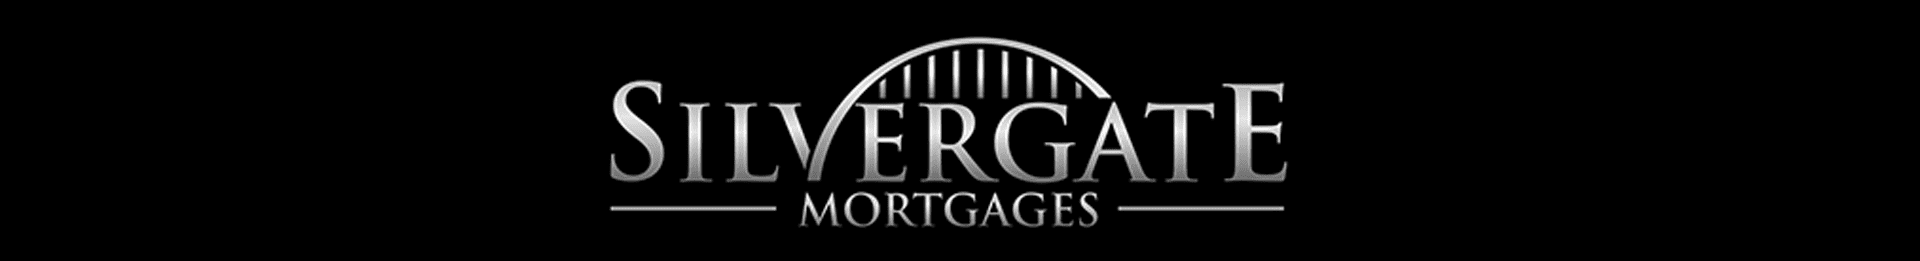 Silvergate Morgages